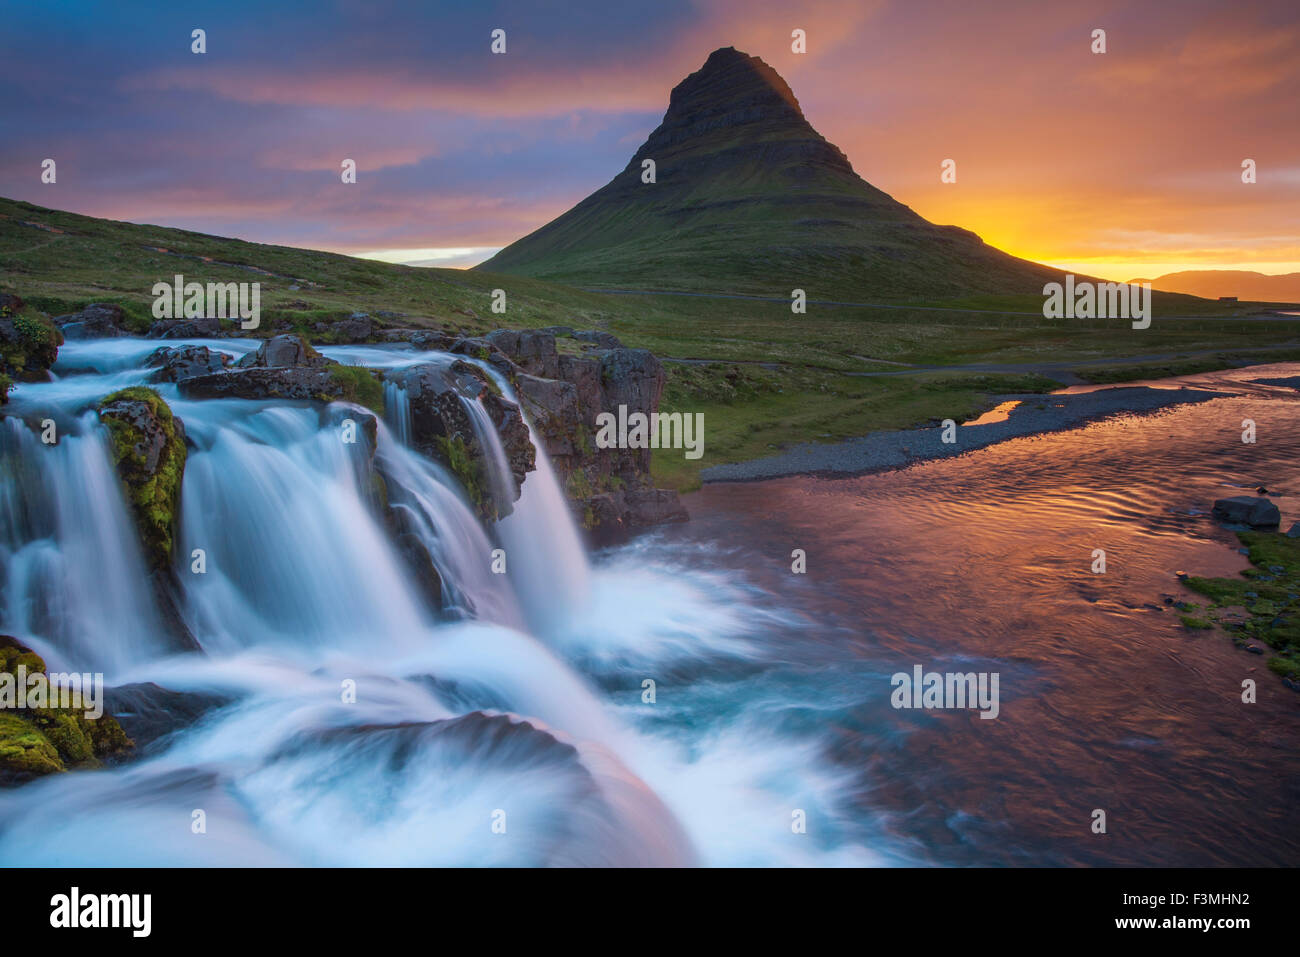 Dawn over Kirkjufell mountain and waterfall, Grundarfjordur, Snaefellsnes Peninsula, Vesturland, Iceland. - Stock Image